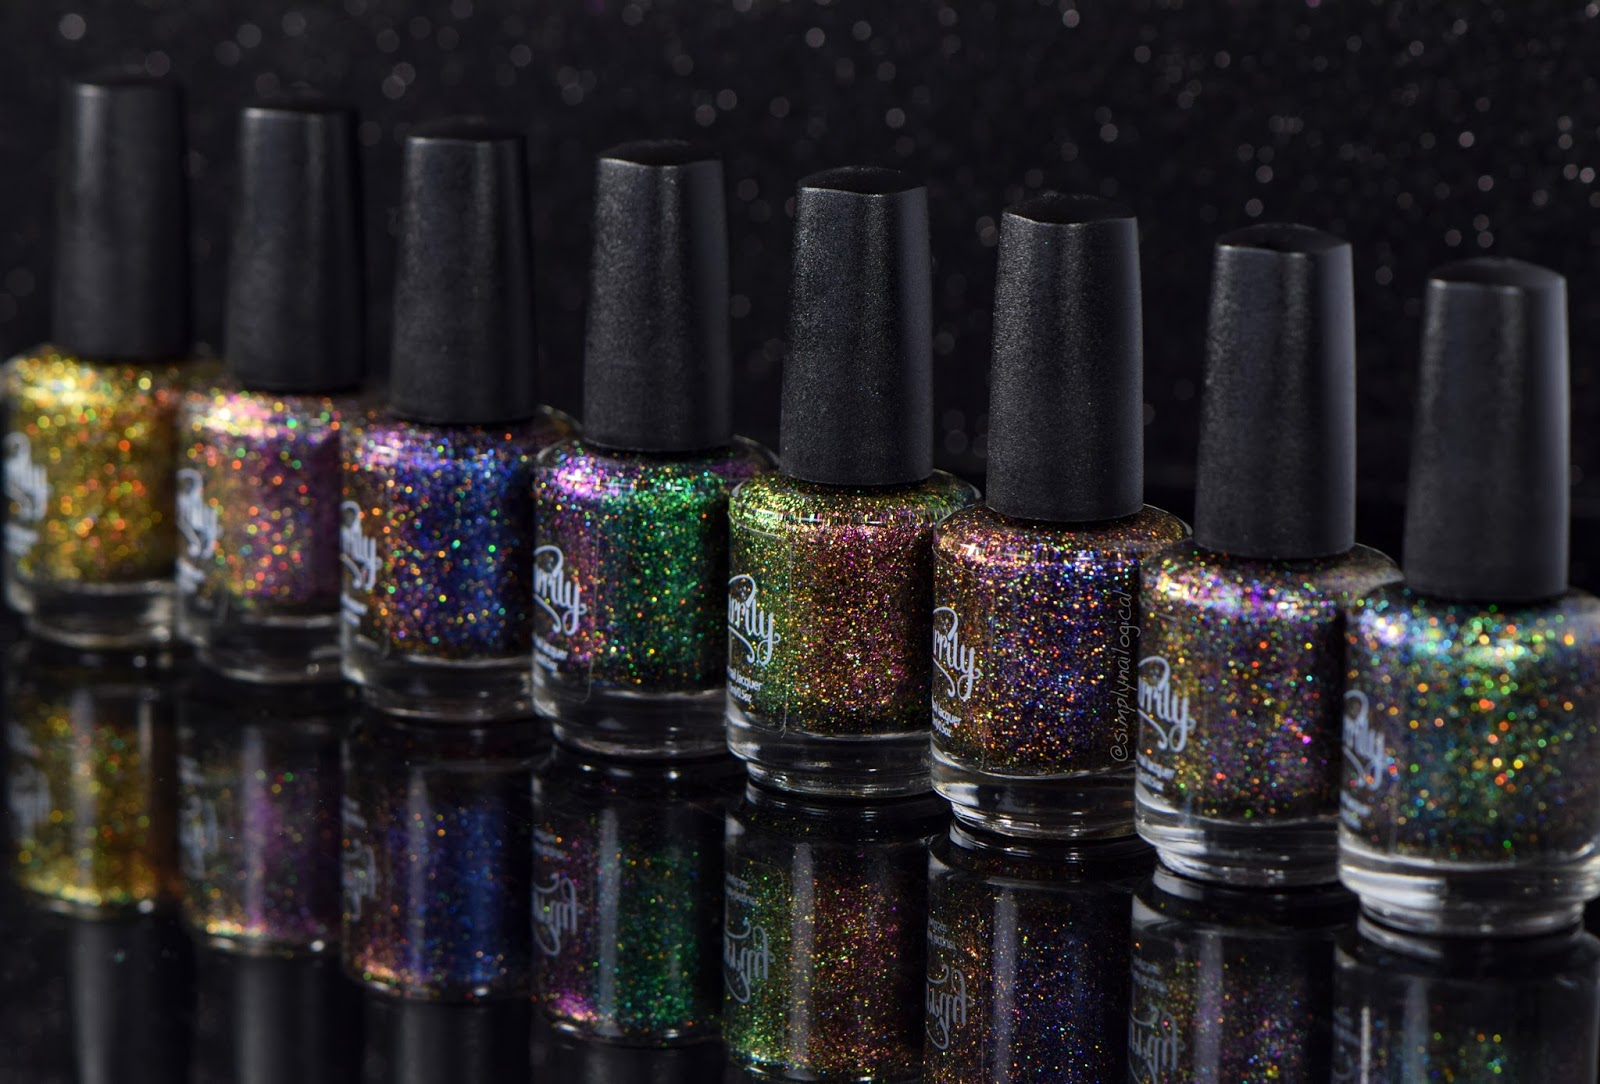 Starrily - Heavenly holos